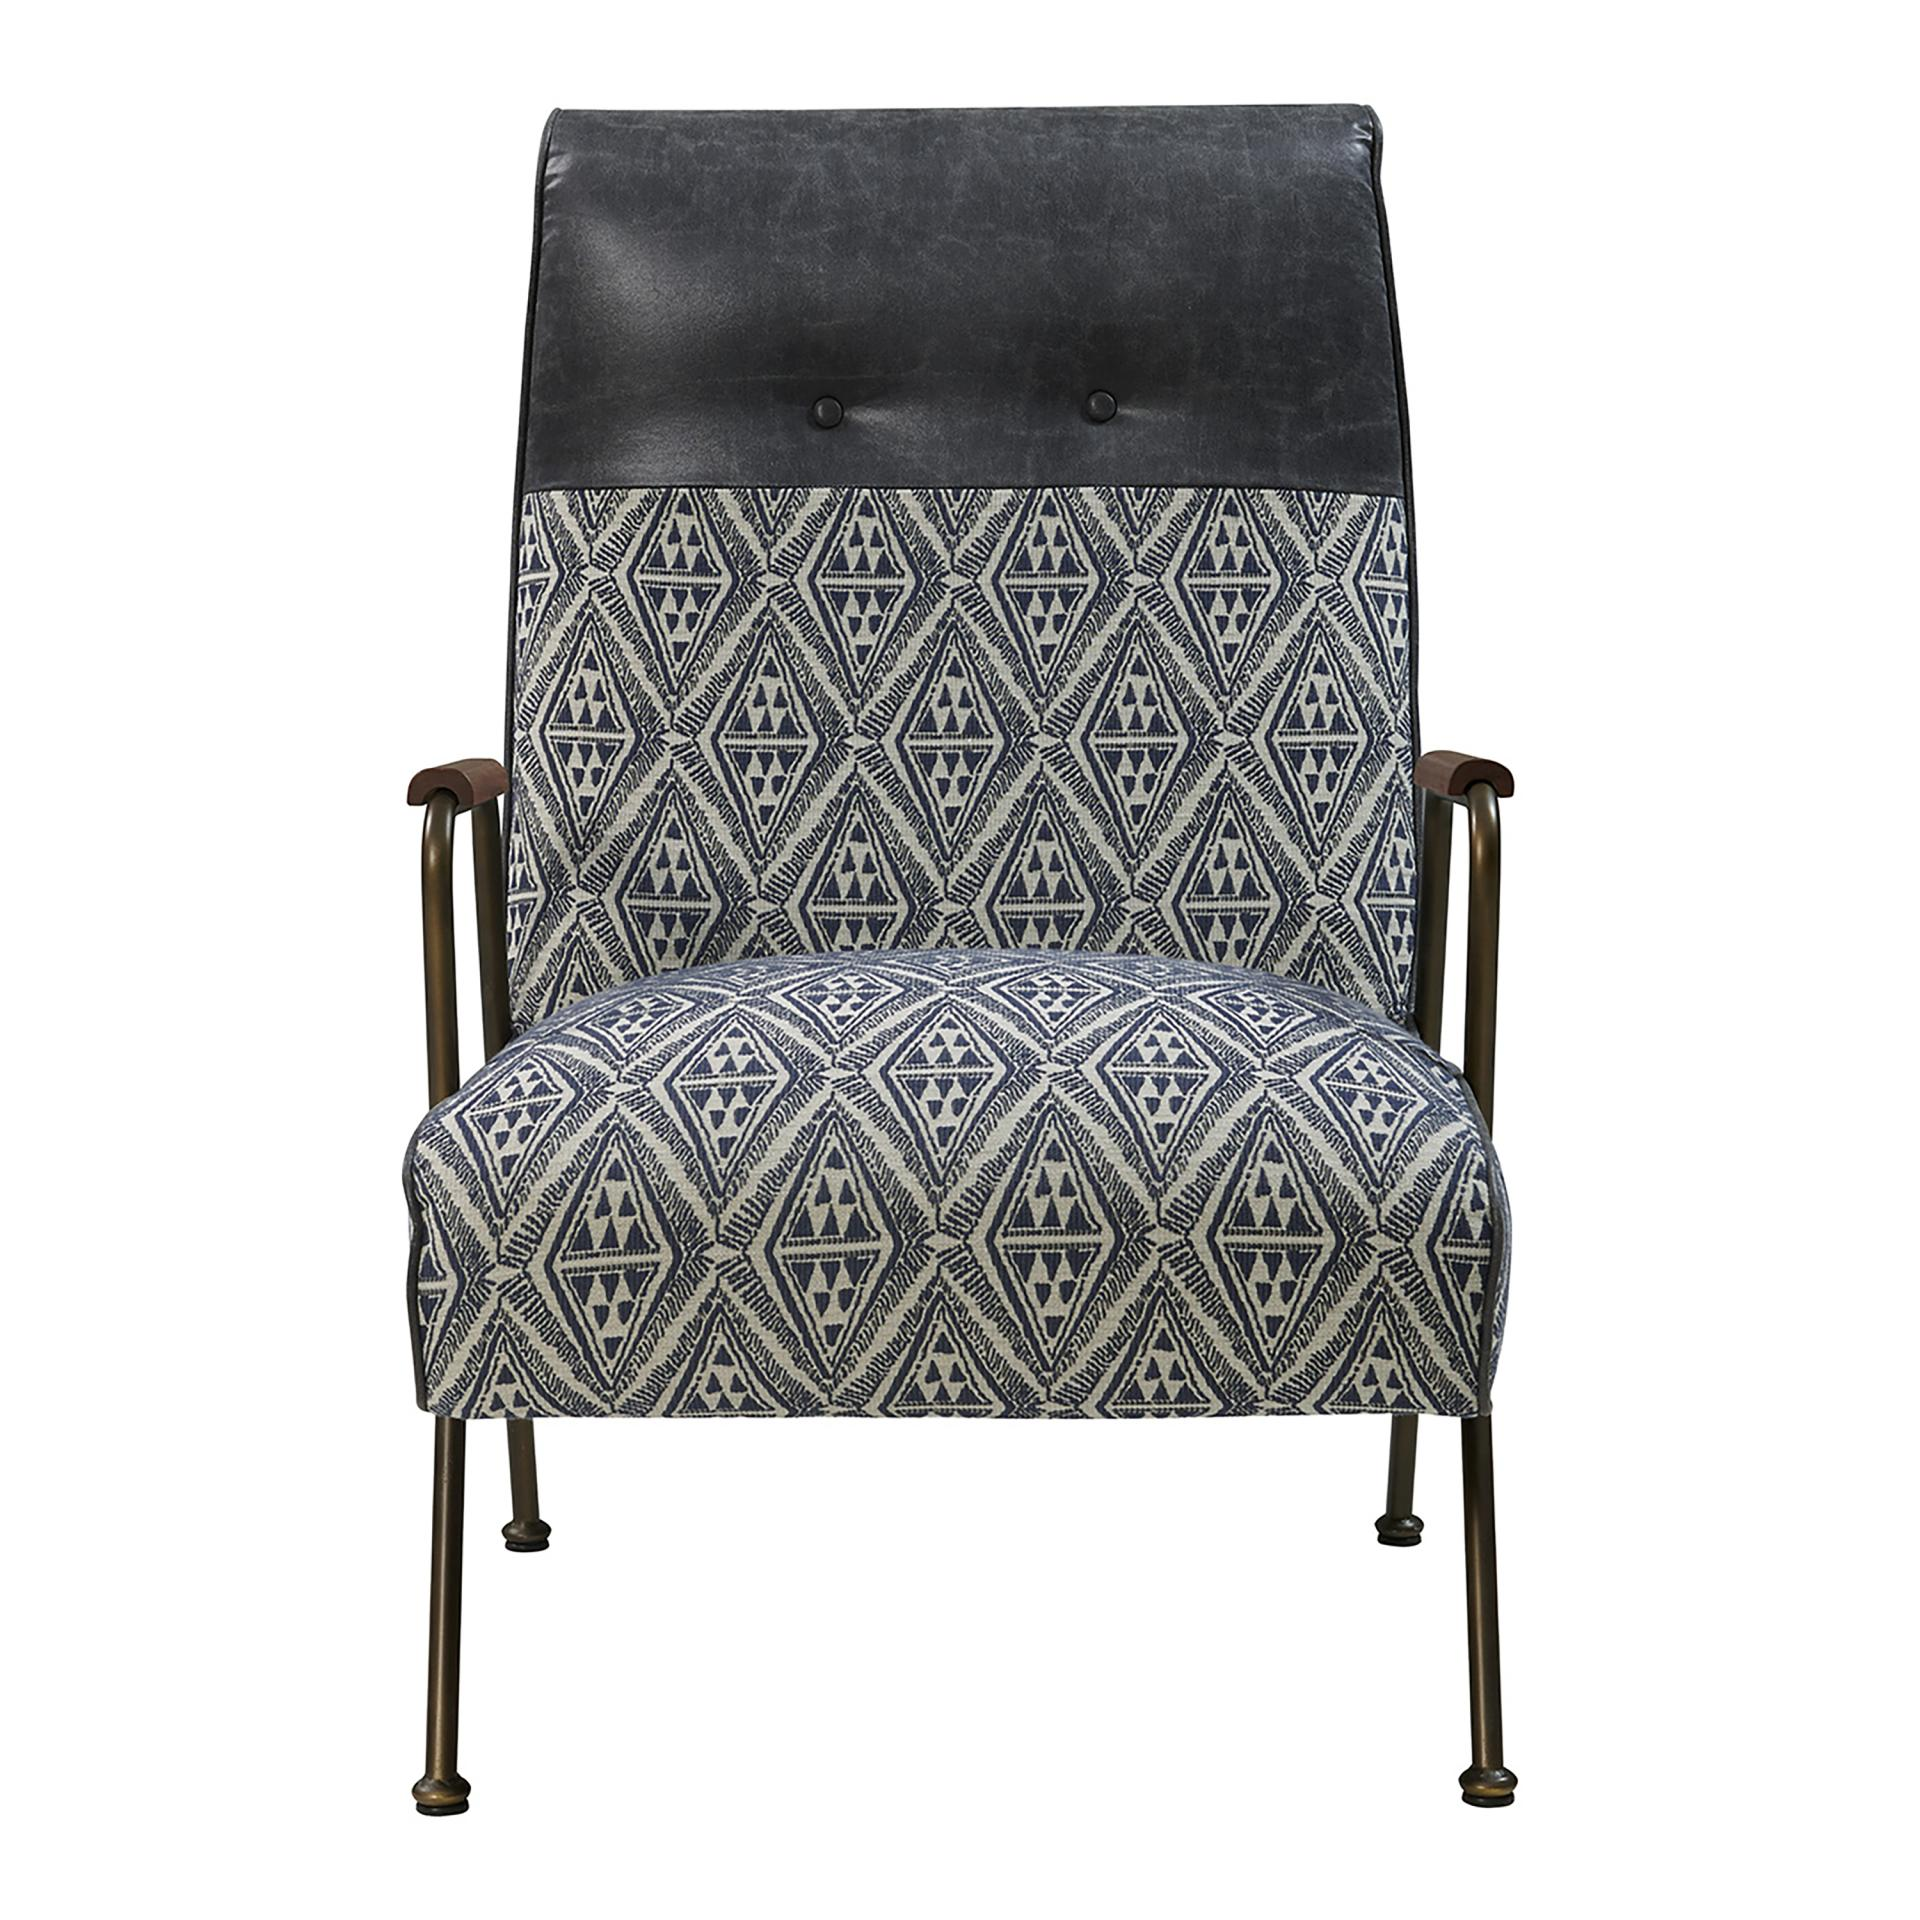 Vintage Accent Chair 9900035 37mn Npd Home Furniture Wholesale Lifestyle Furnishings